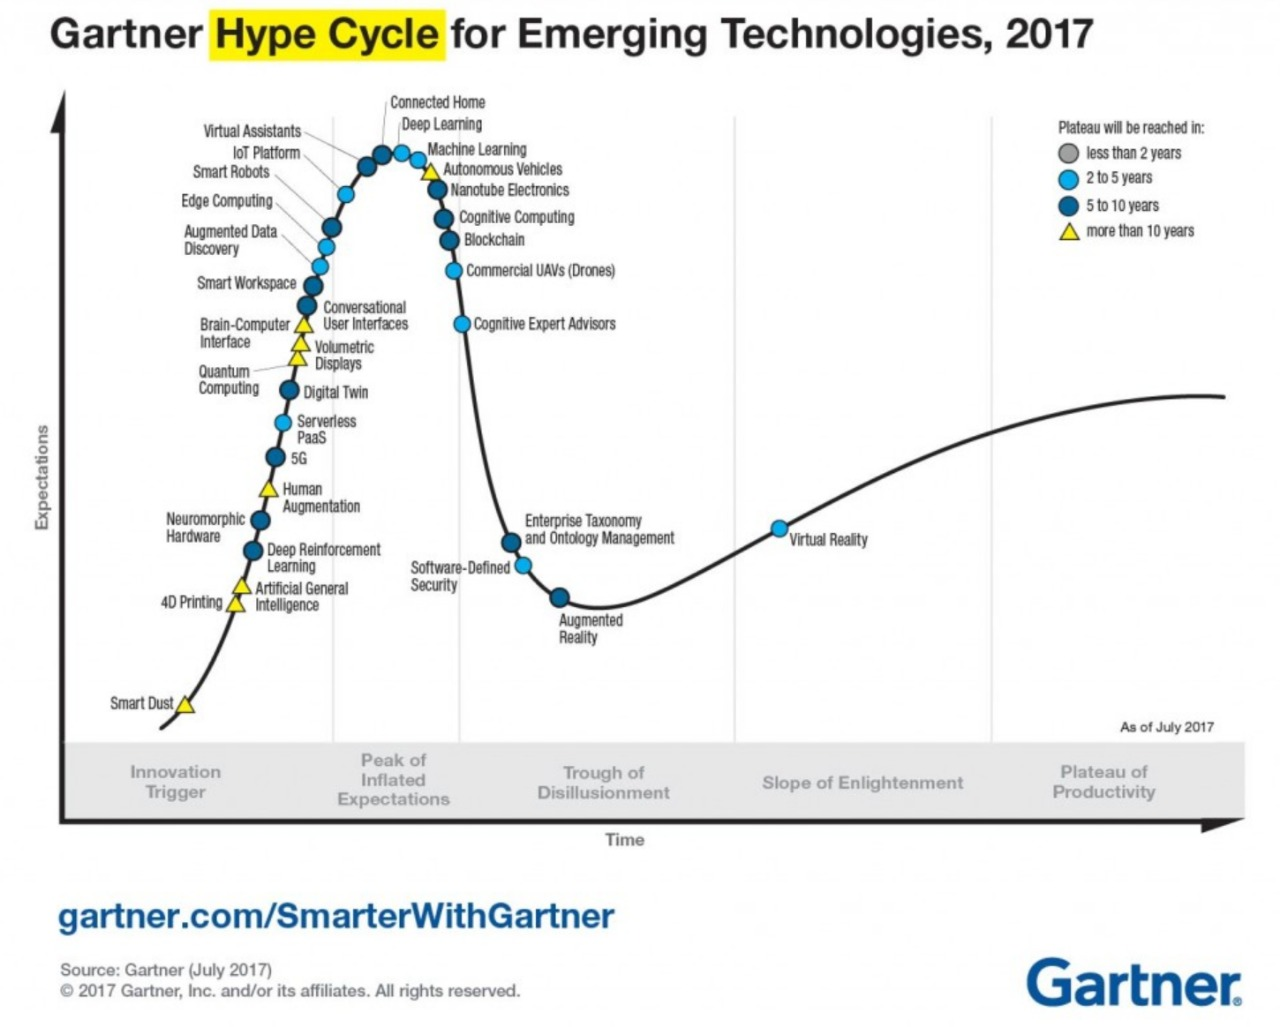 Gartner Hype Cycle for Emergency Technologies 2017